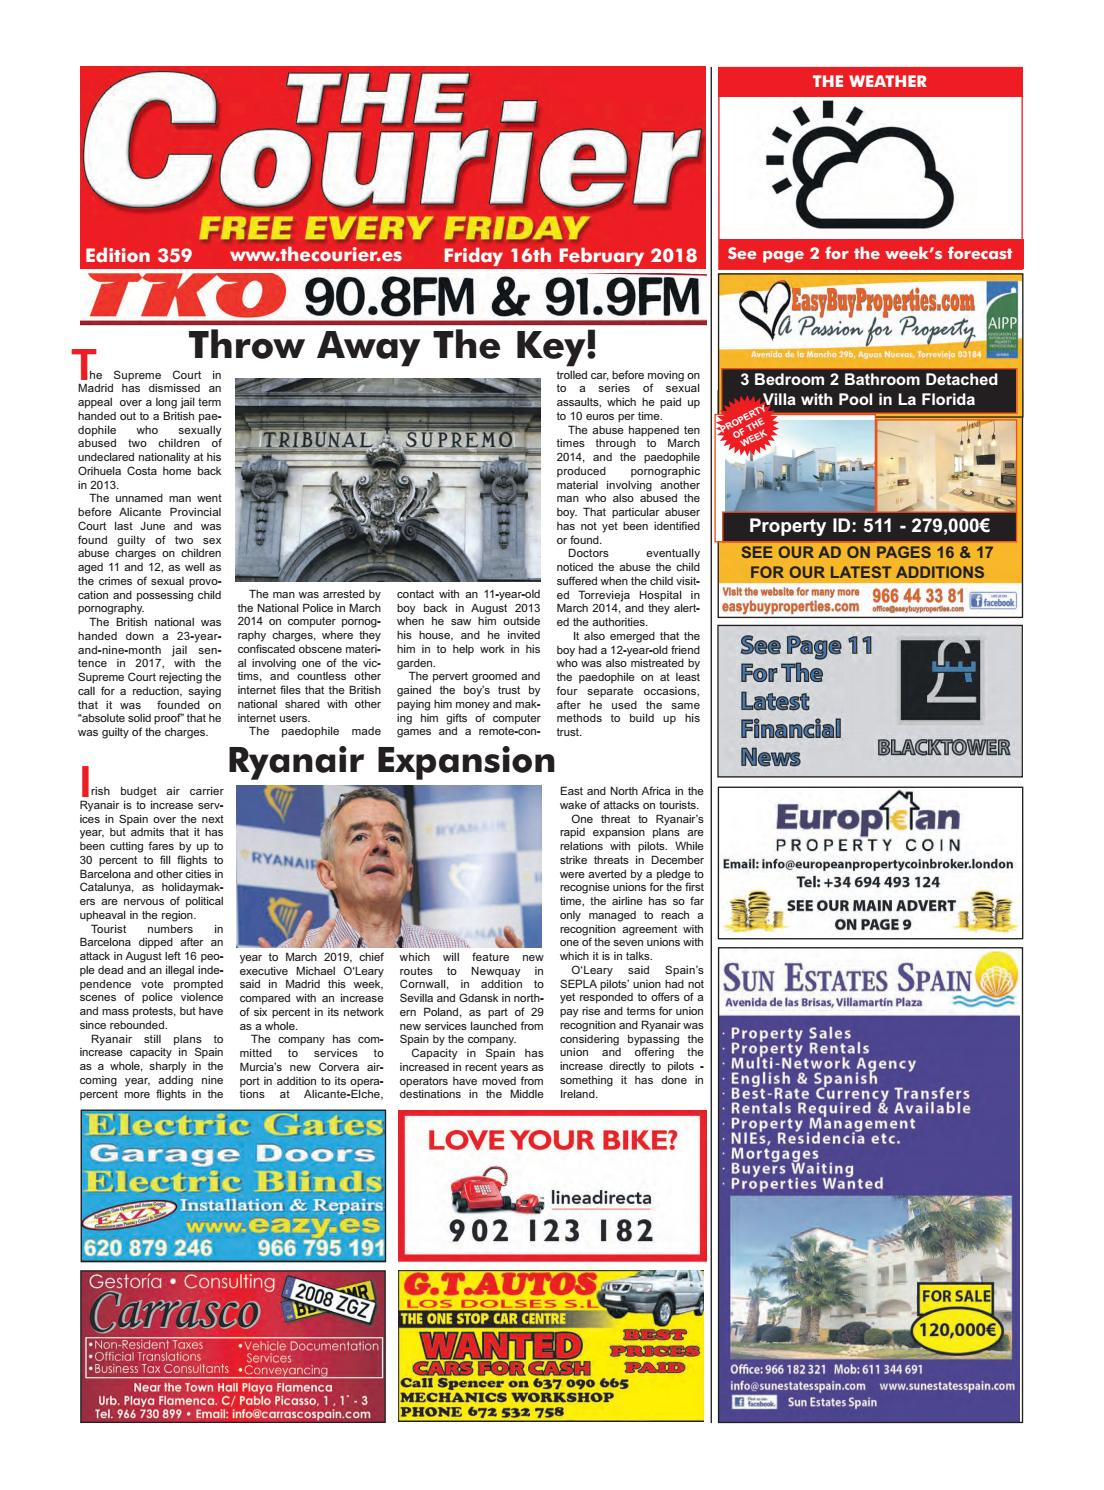 The Courier Edition 359 By The Courier Newspaper Issuu